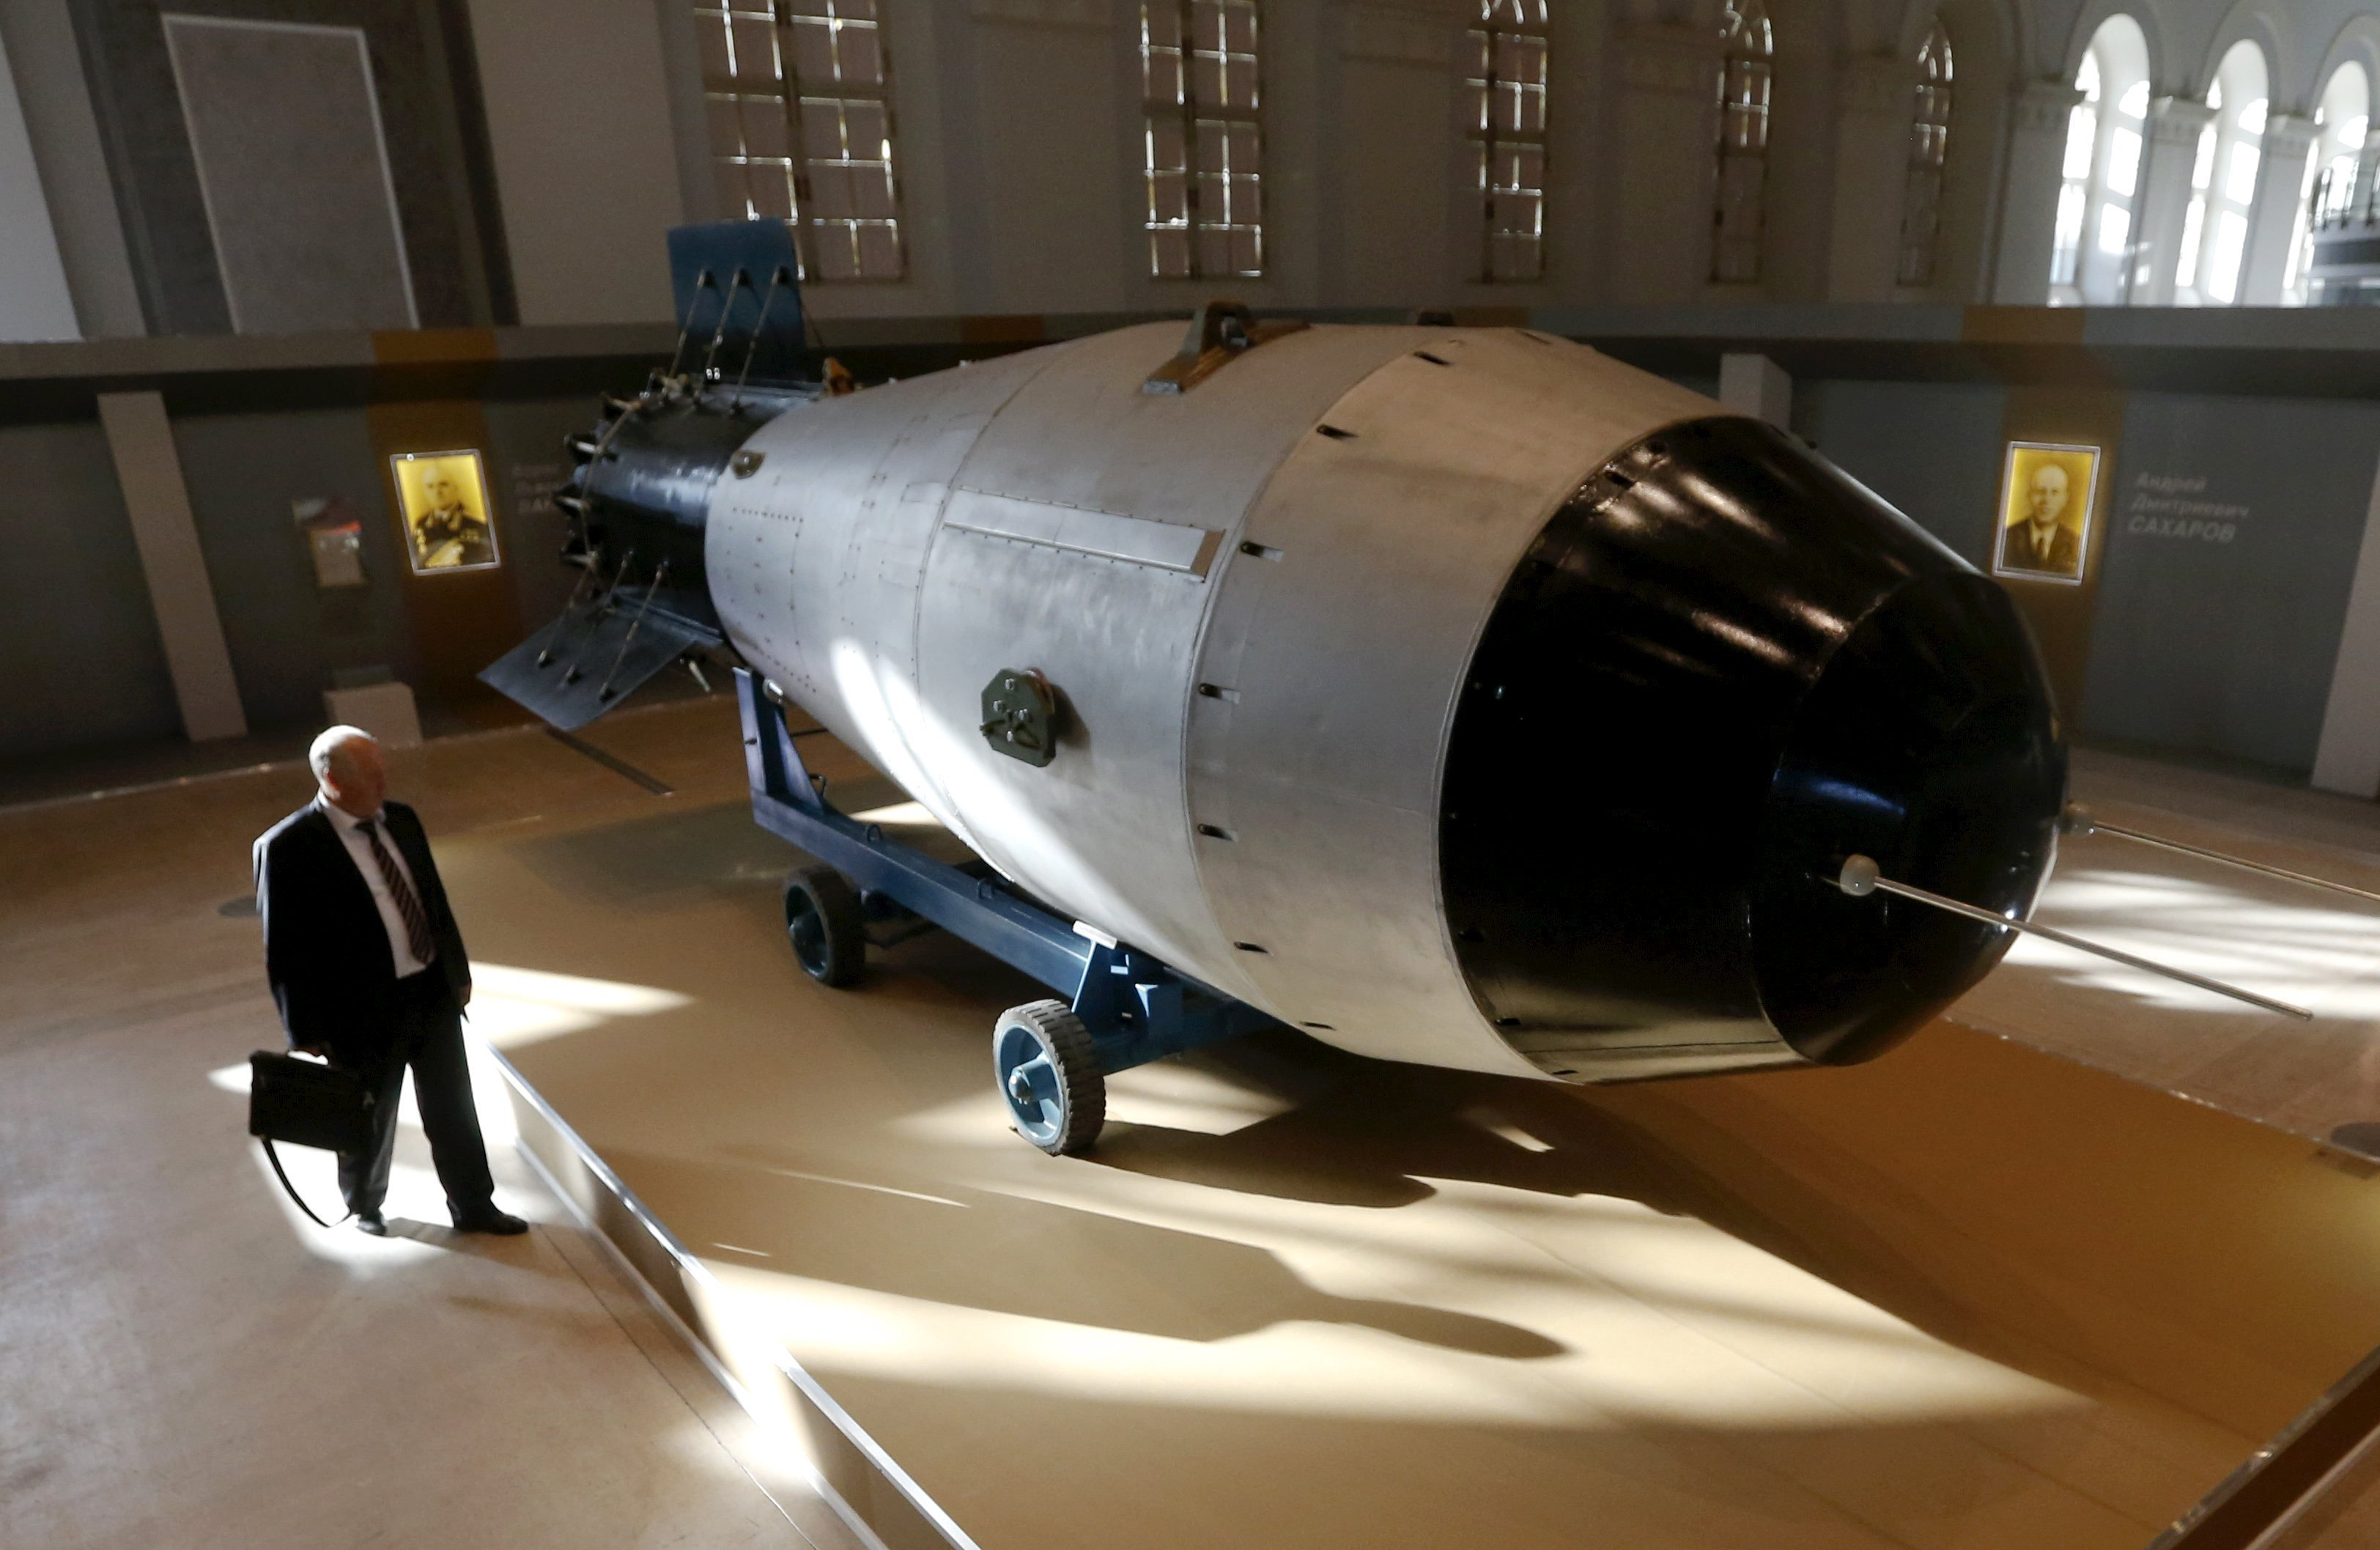 Shell, which is the replica of the biggest detonated Soviet nuclear bomb AN-602 (Tsar-Bomb), is on display in Moscow, Russia, August 31, 2015